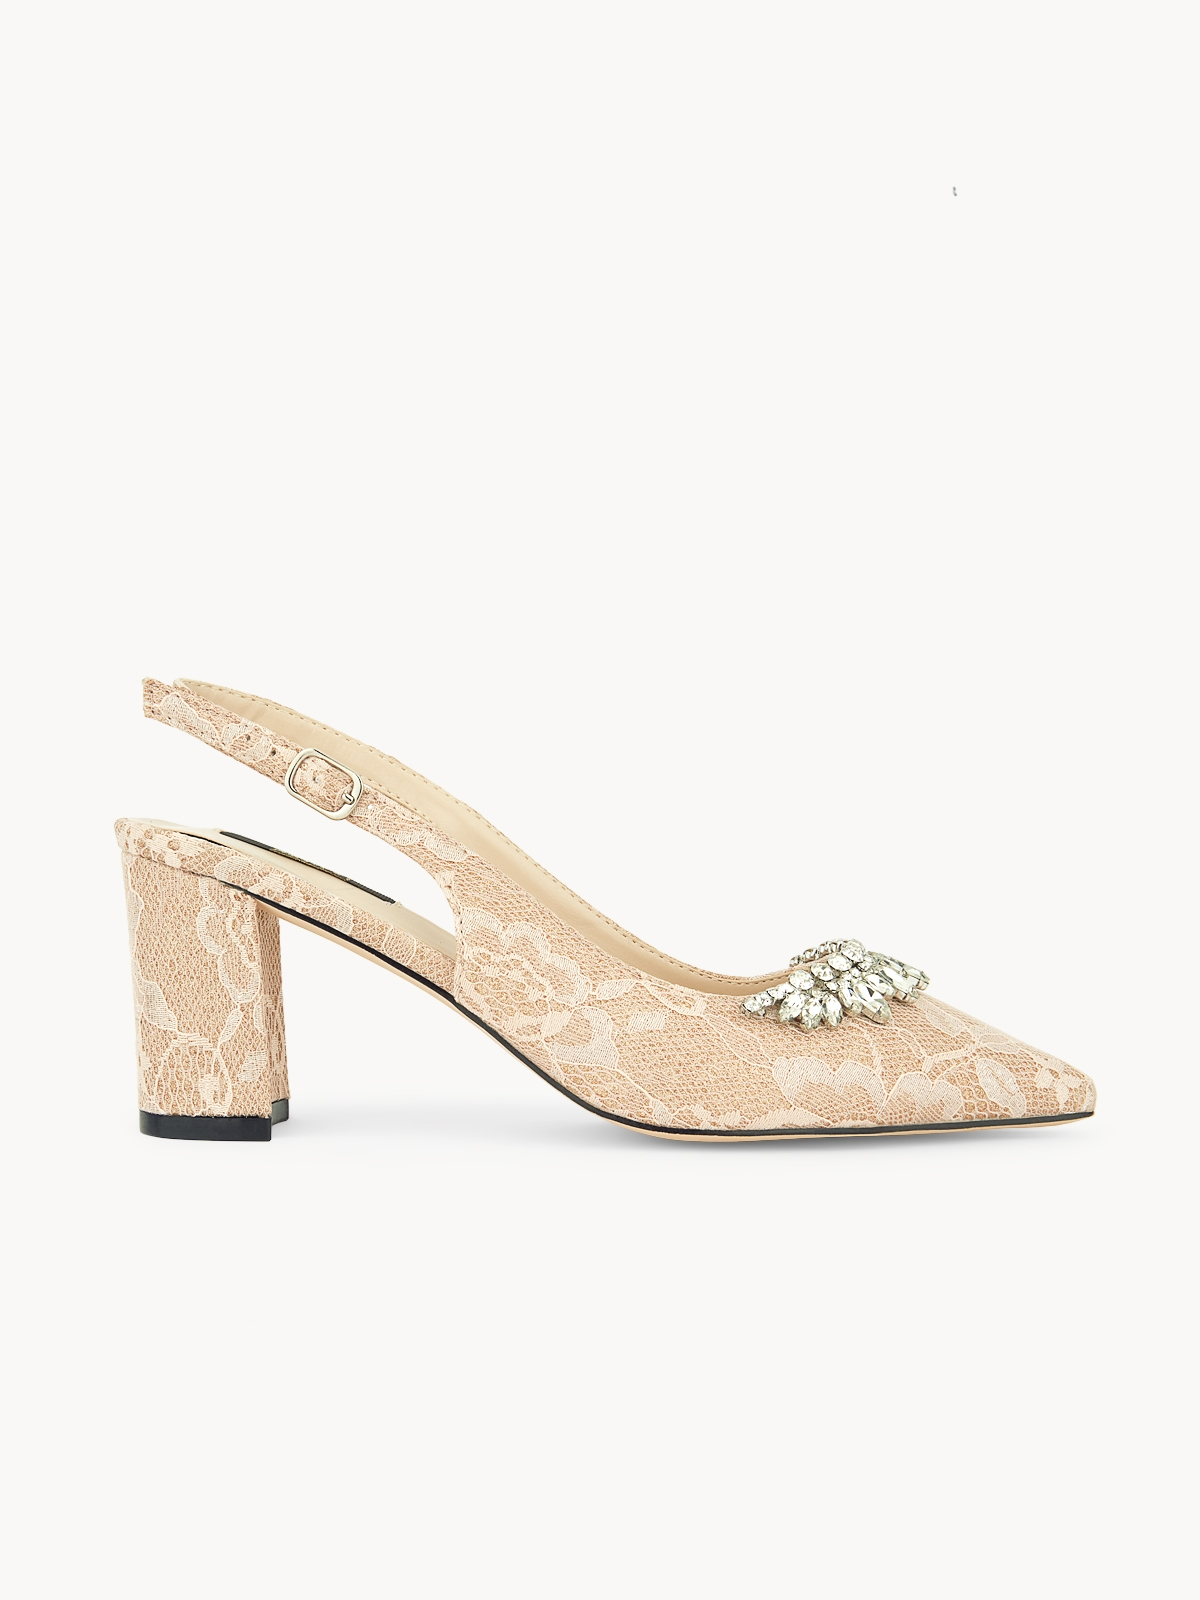 March Shoes Lace Block Heels Pink Gold